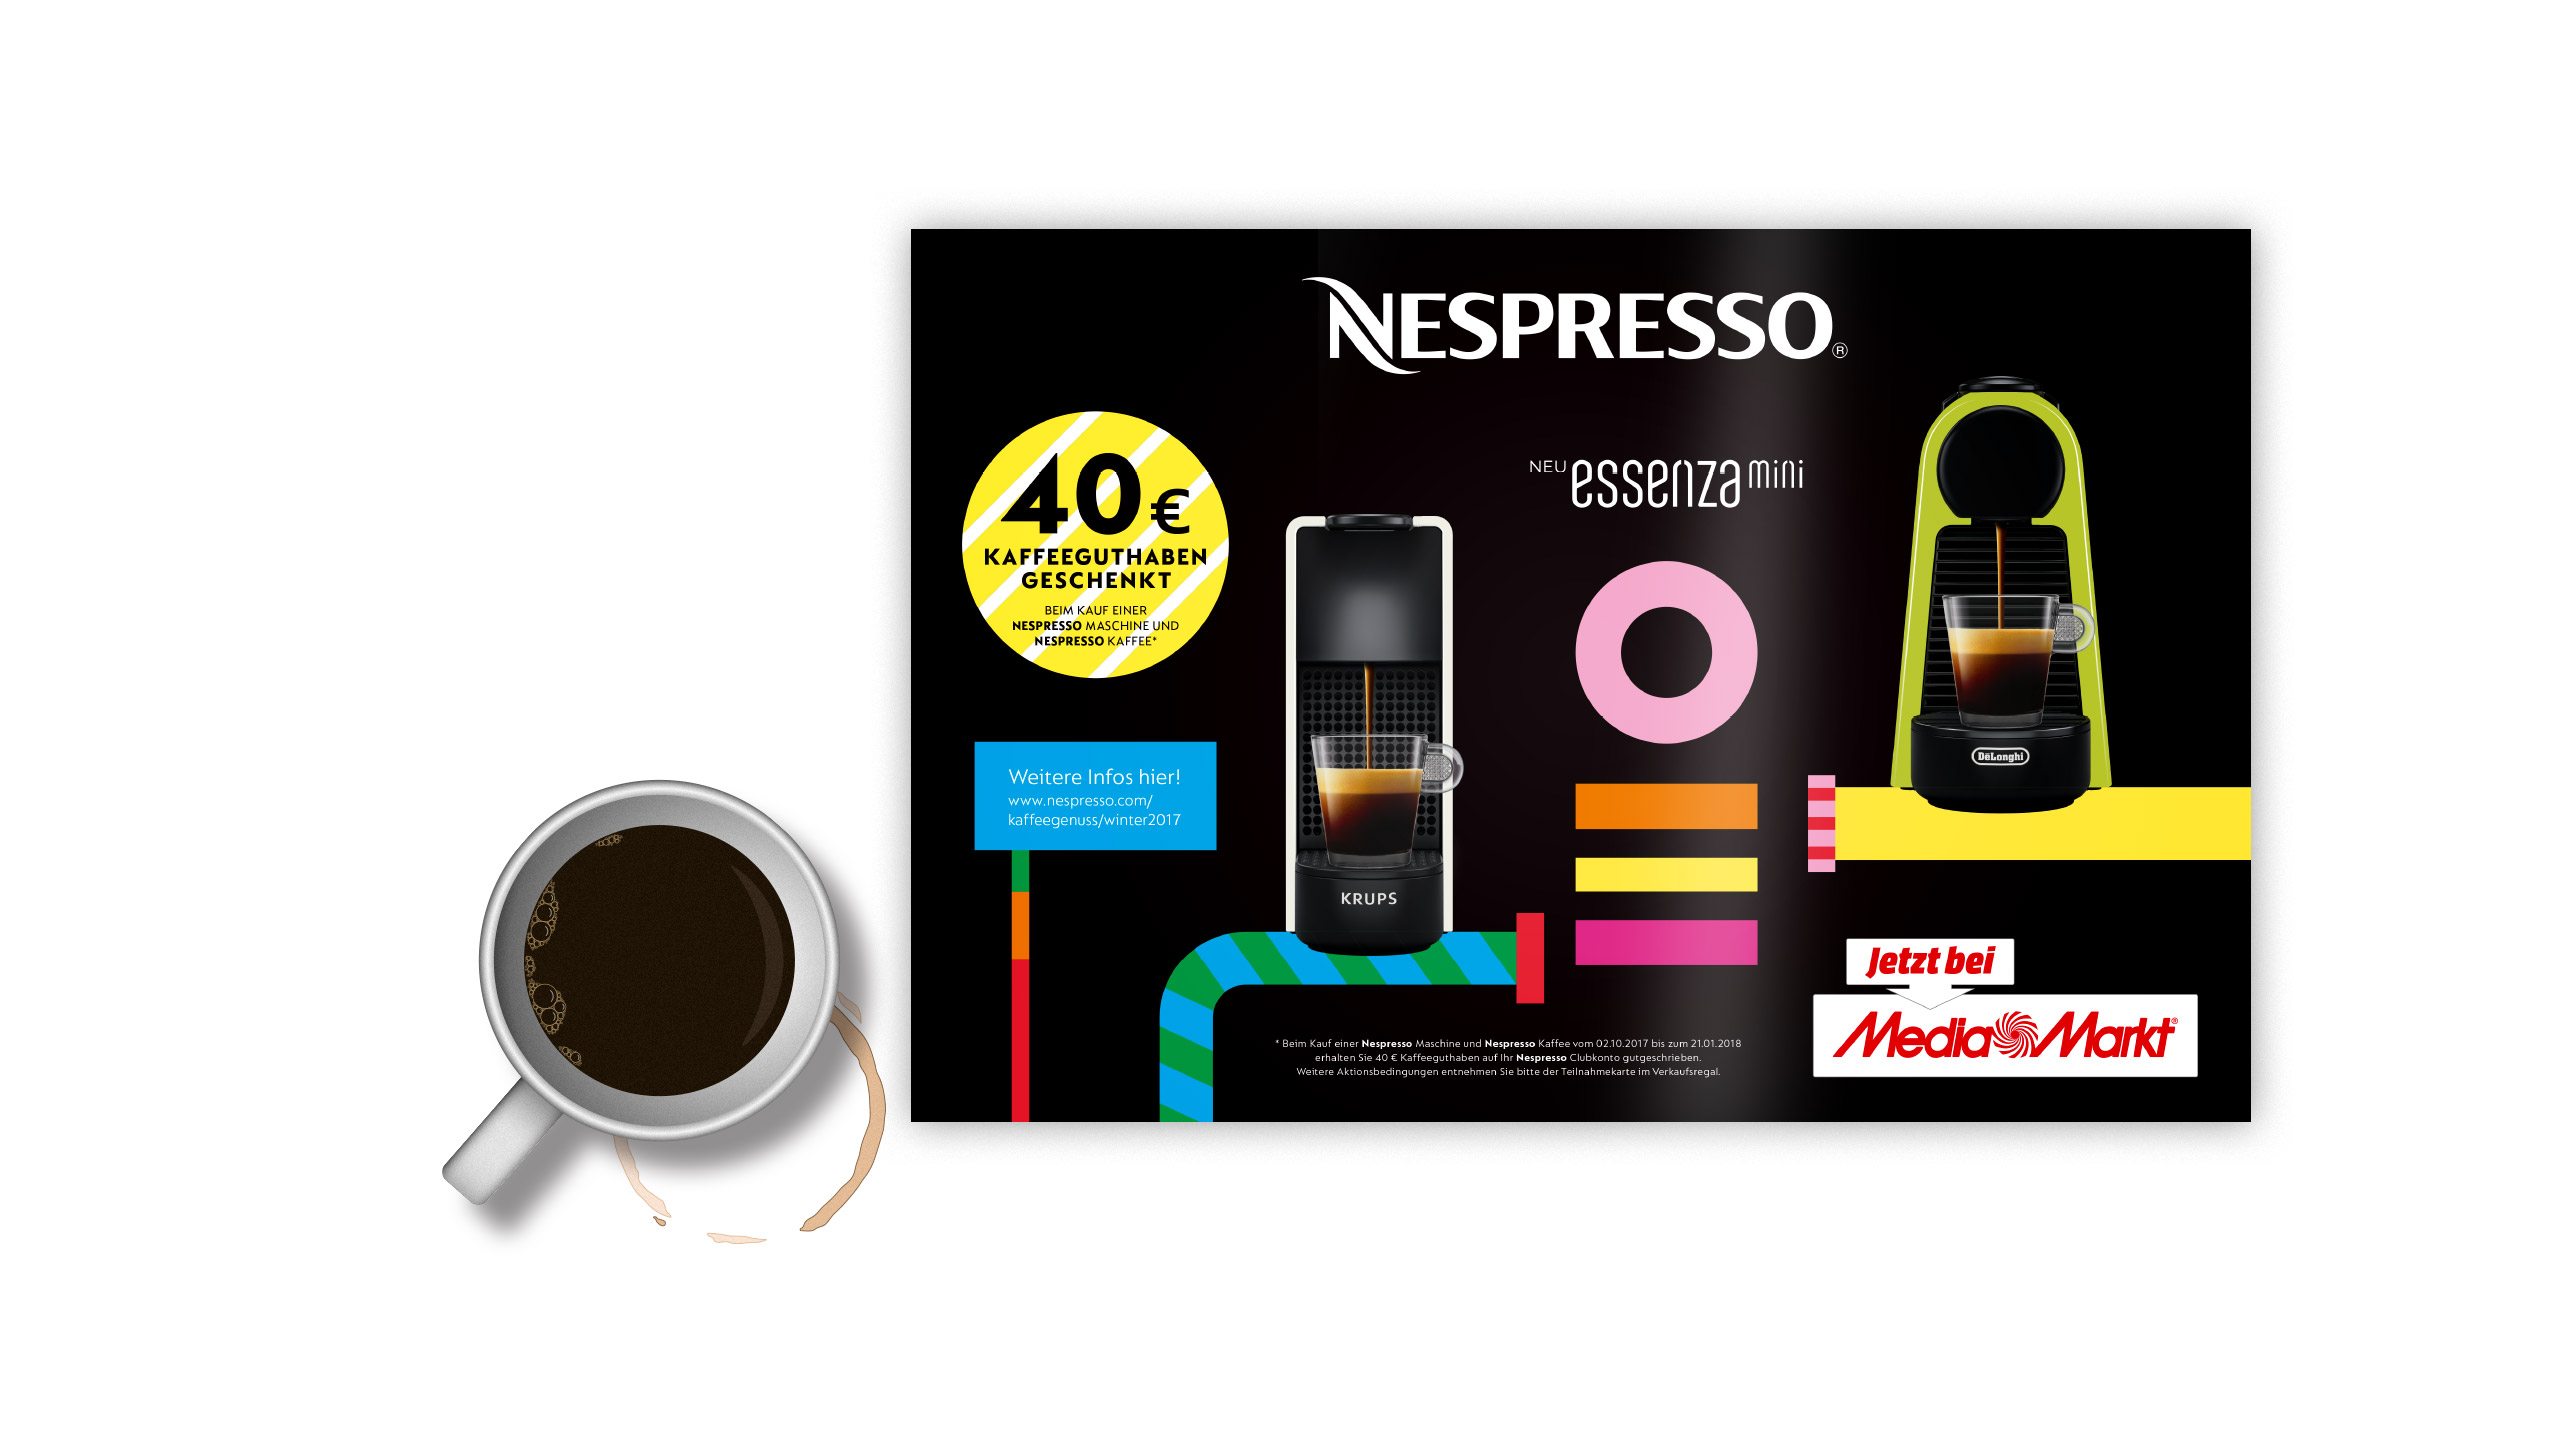 Nespresso N-Point Year End Promotion 2017